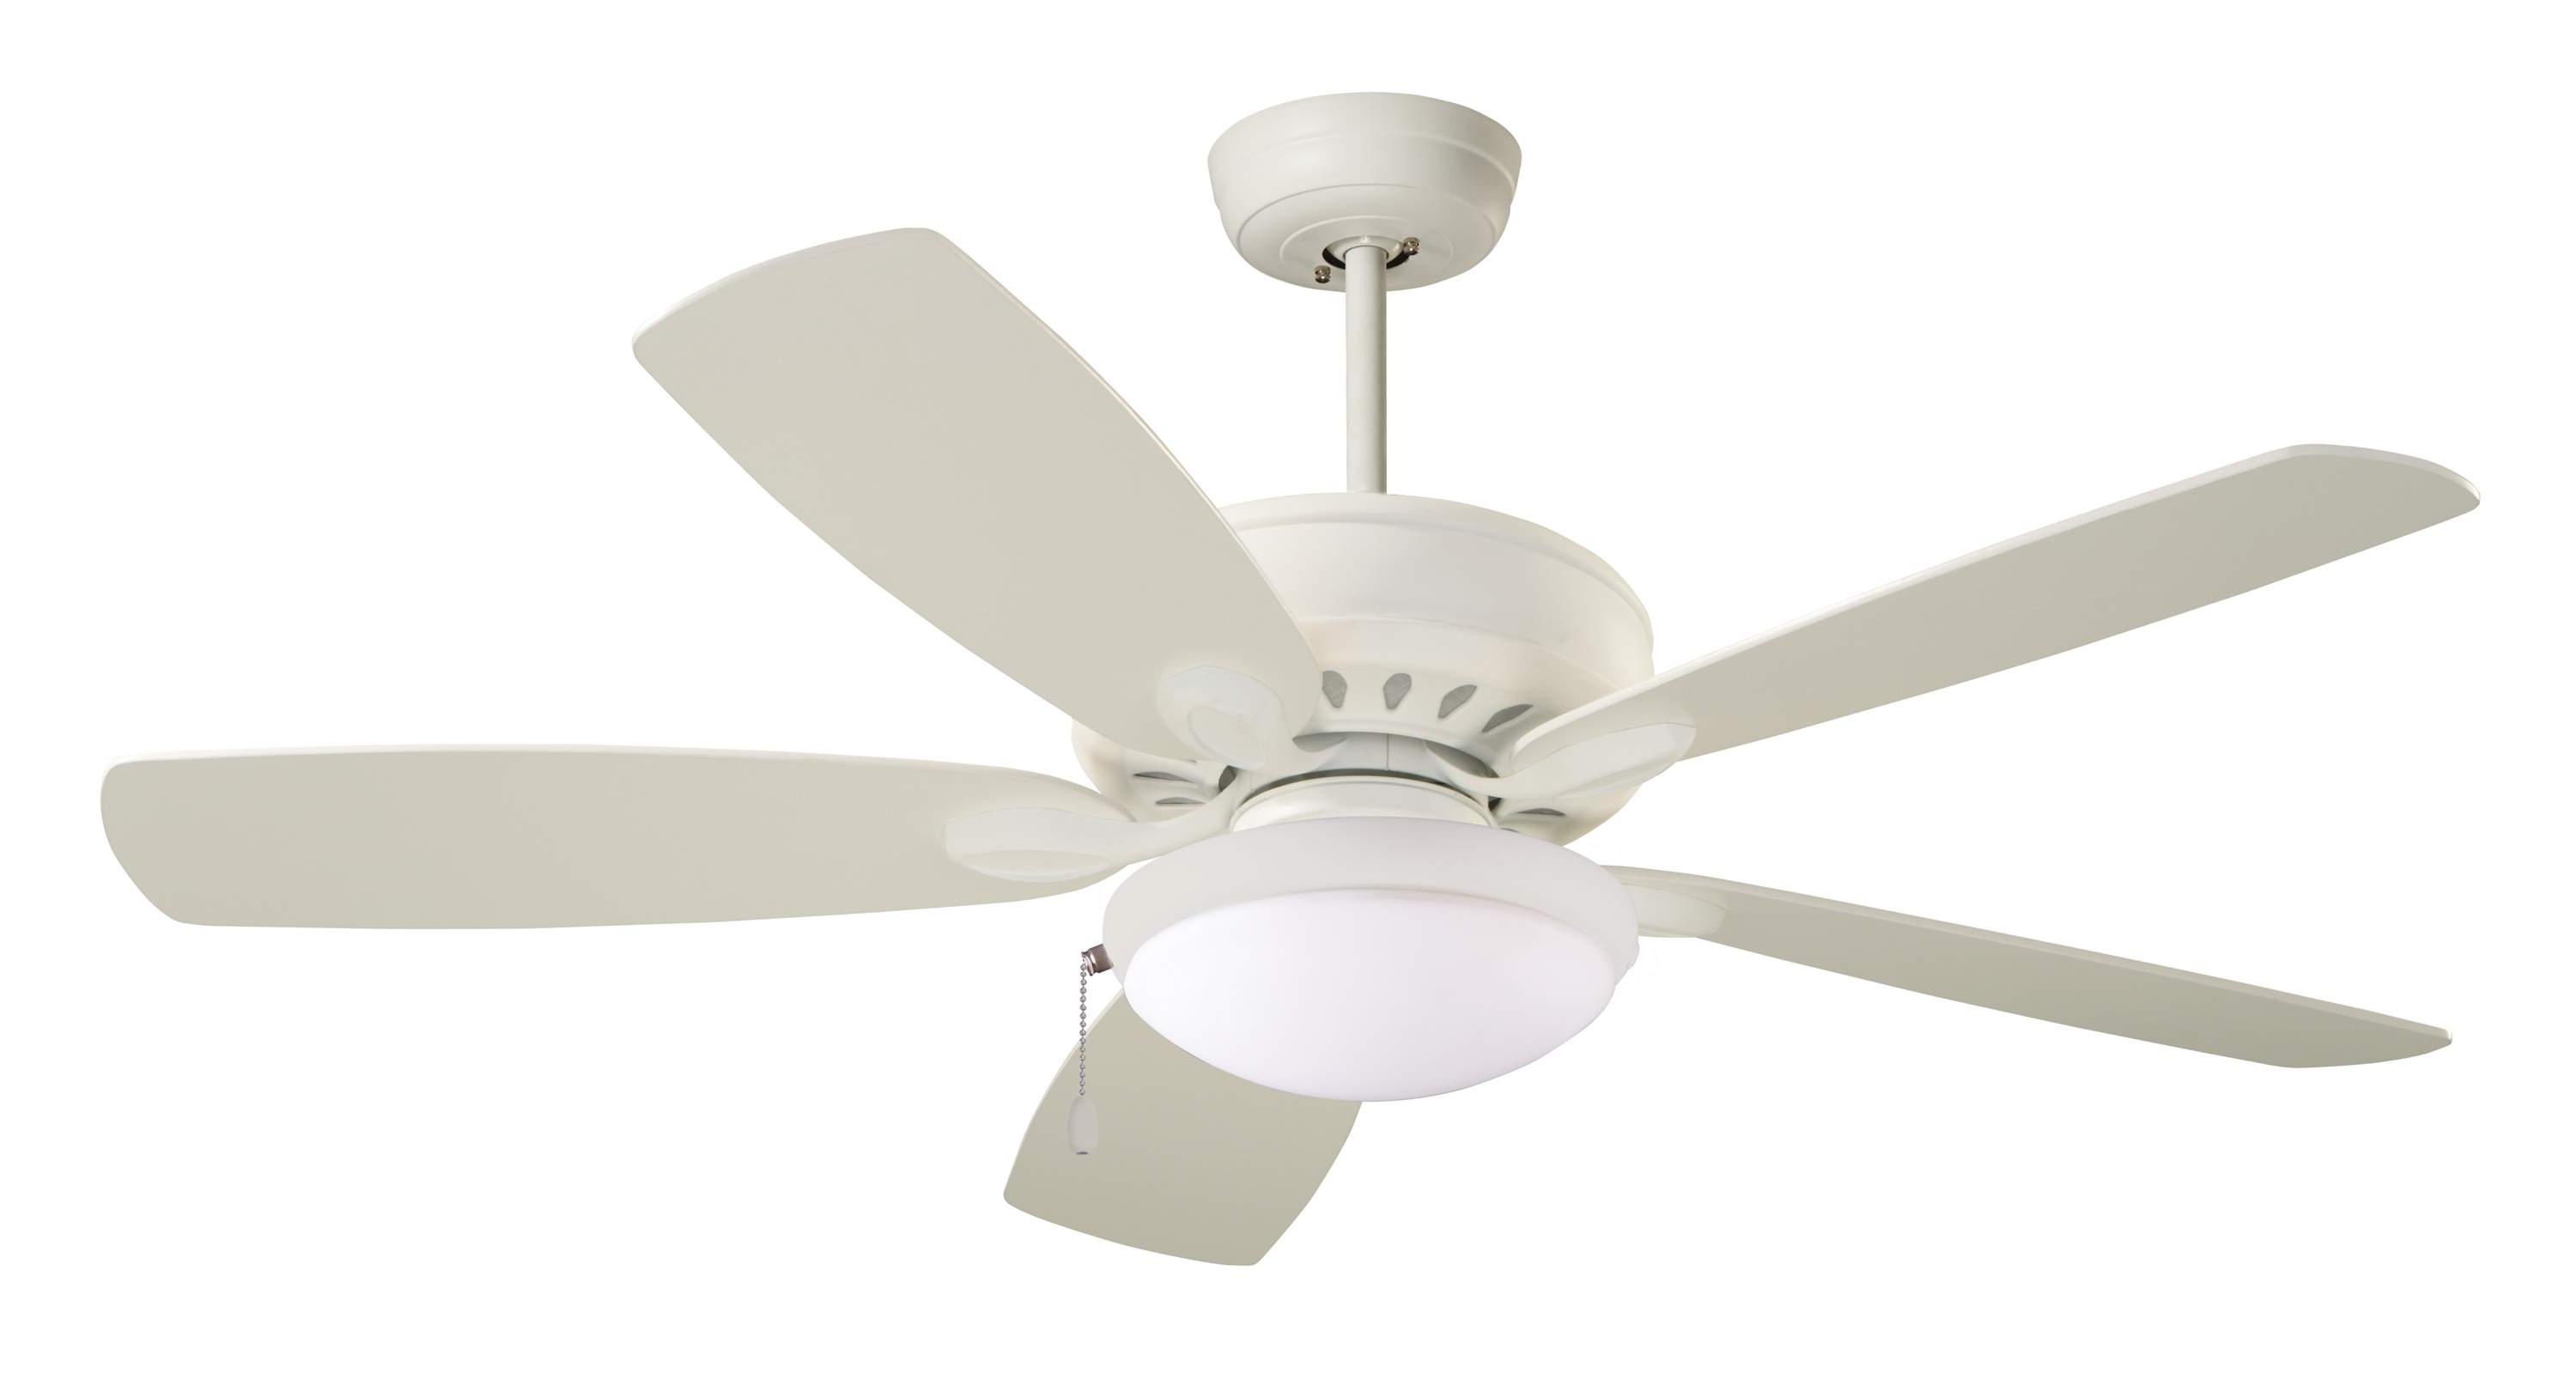 Ceiling: Marvelous Ceiling Fans Menards Lowes Ceiling Fans With Inside Widely Used Outdoor Ceiling Fans At Menards (View 11 of 20)